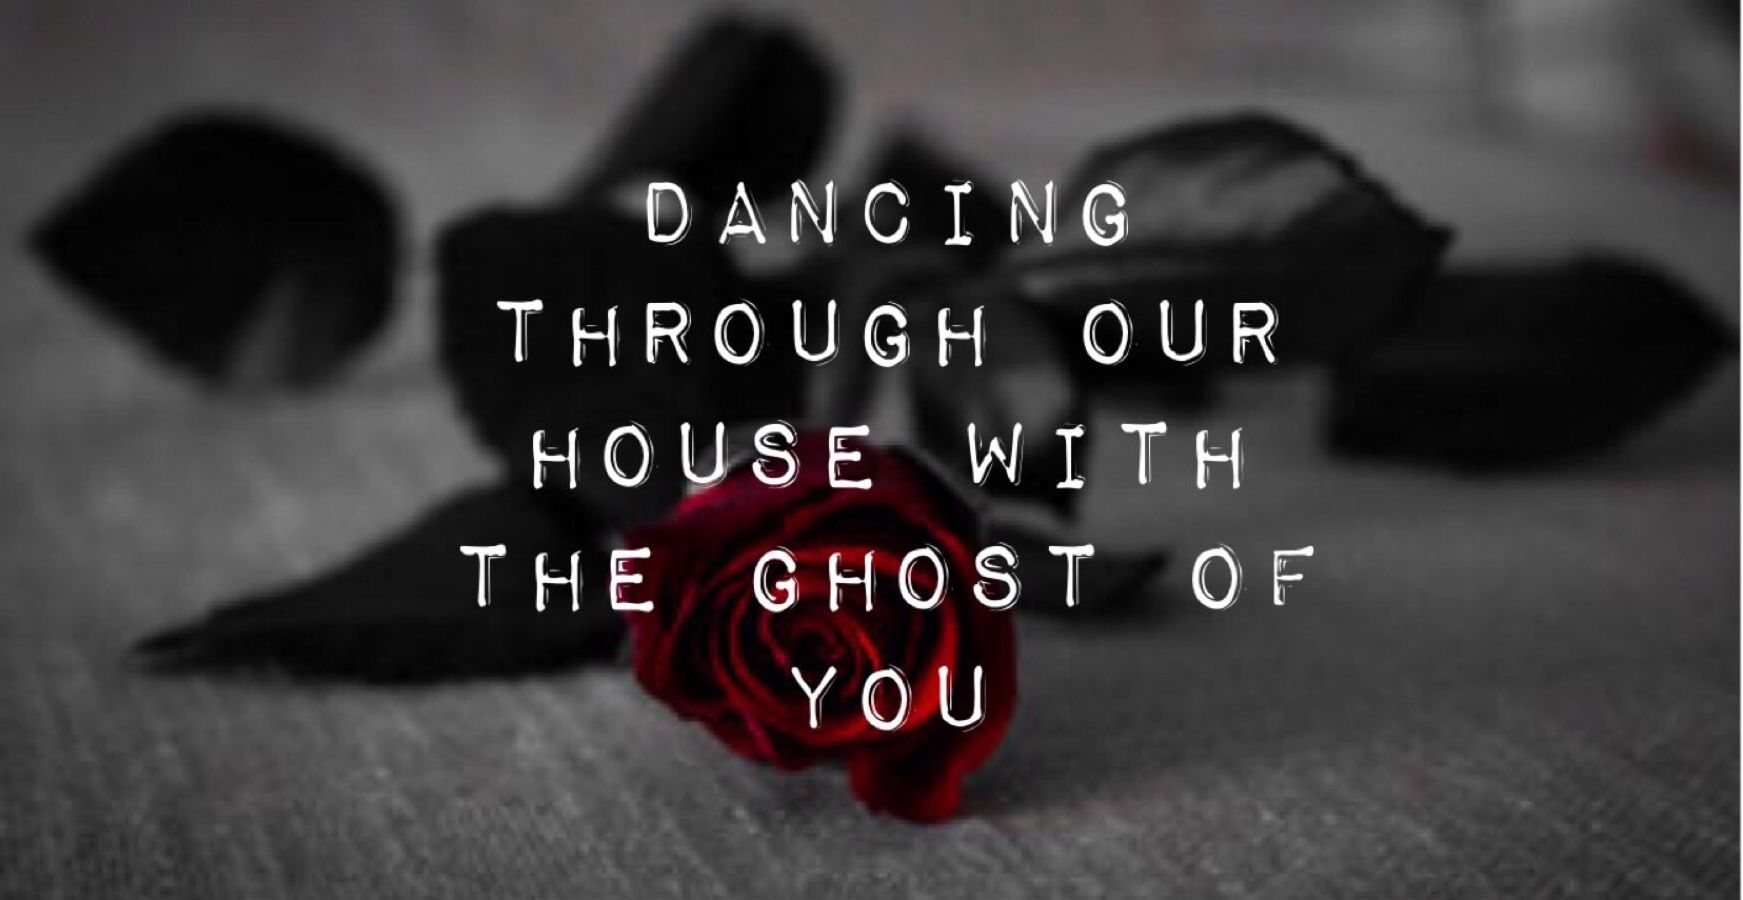 Ghost of you' - 5 Seconds Of Summer (Youngblood album) #5sos